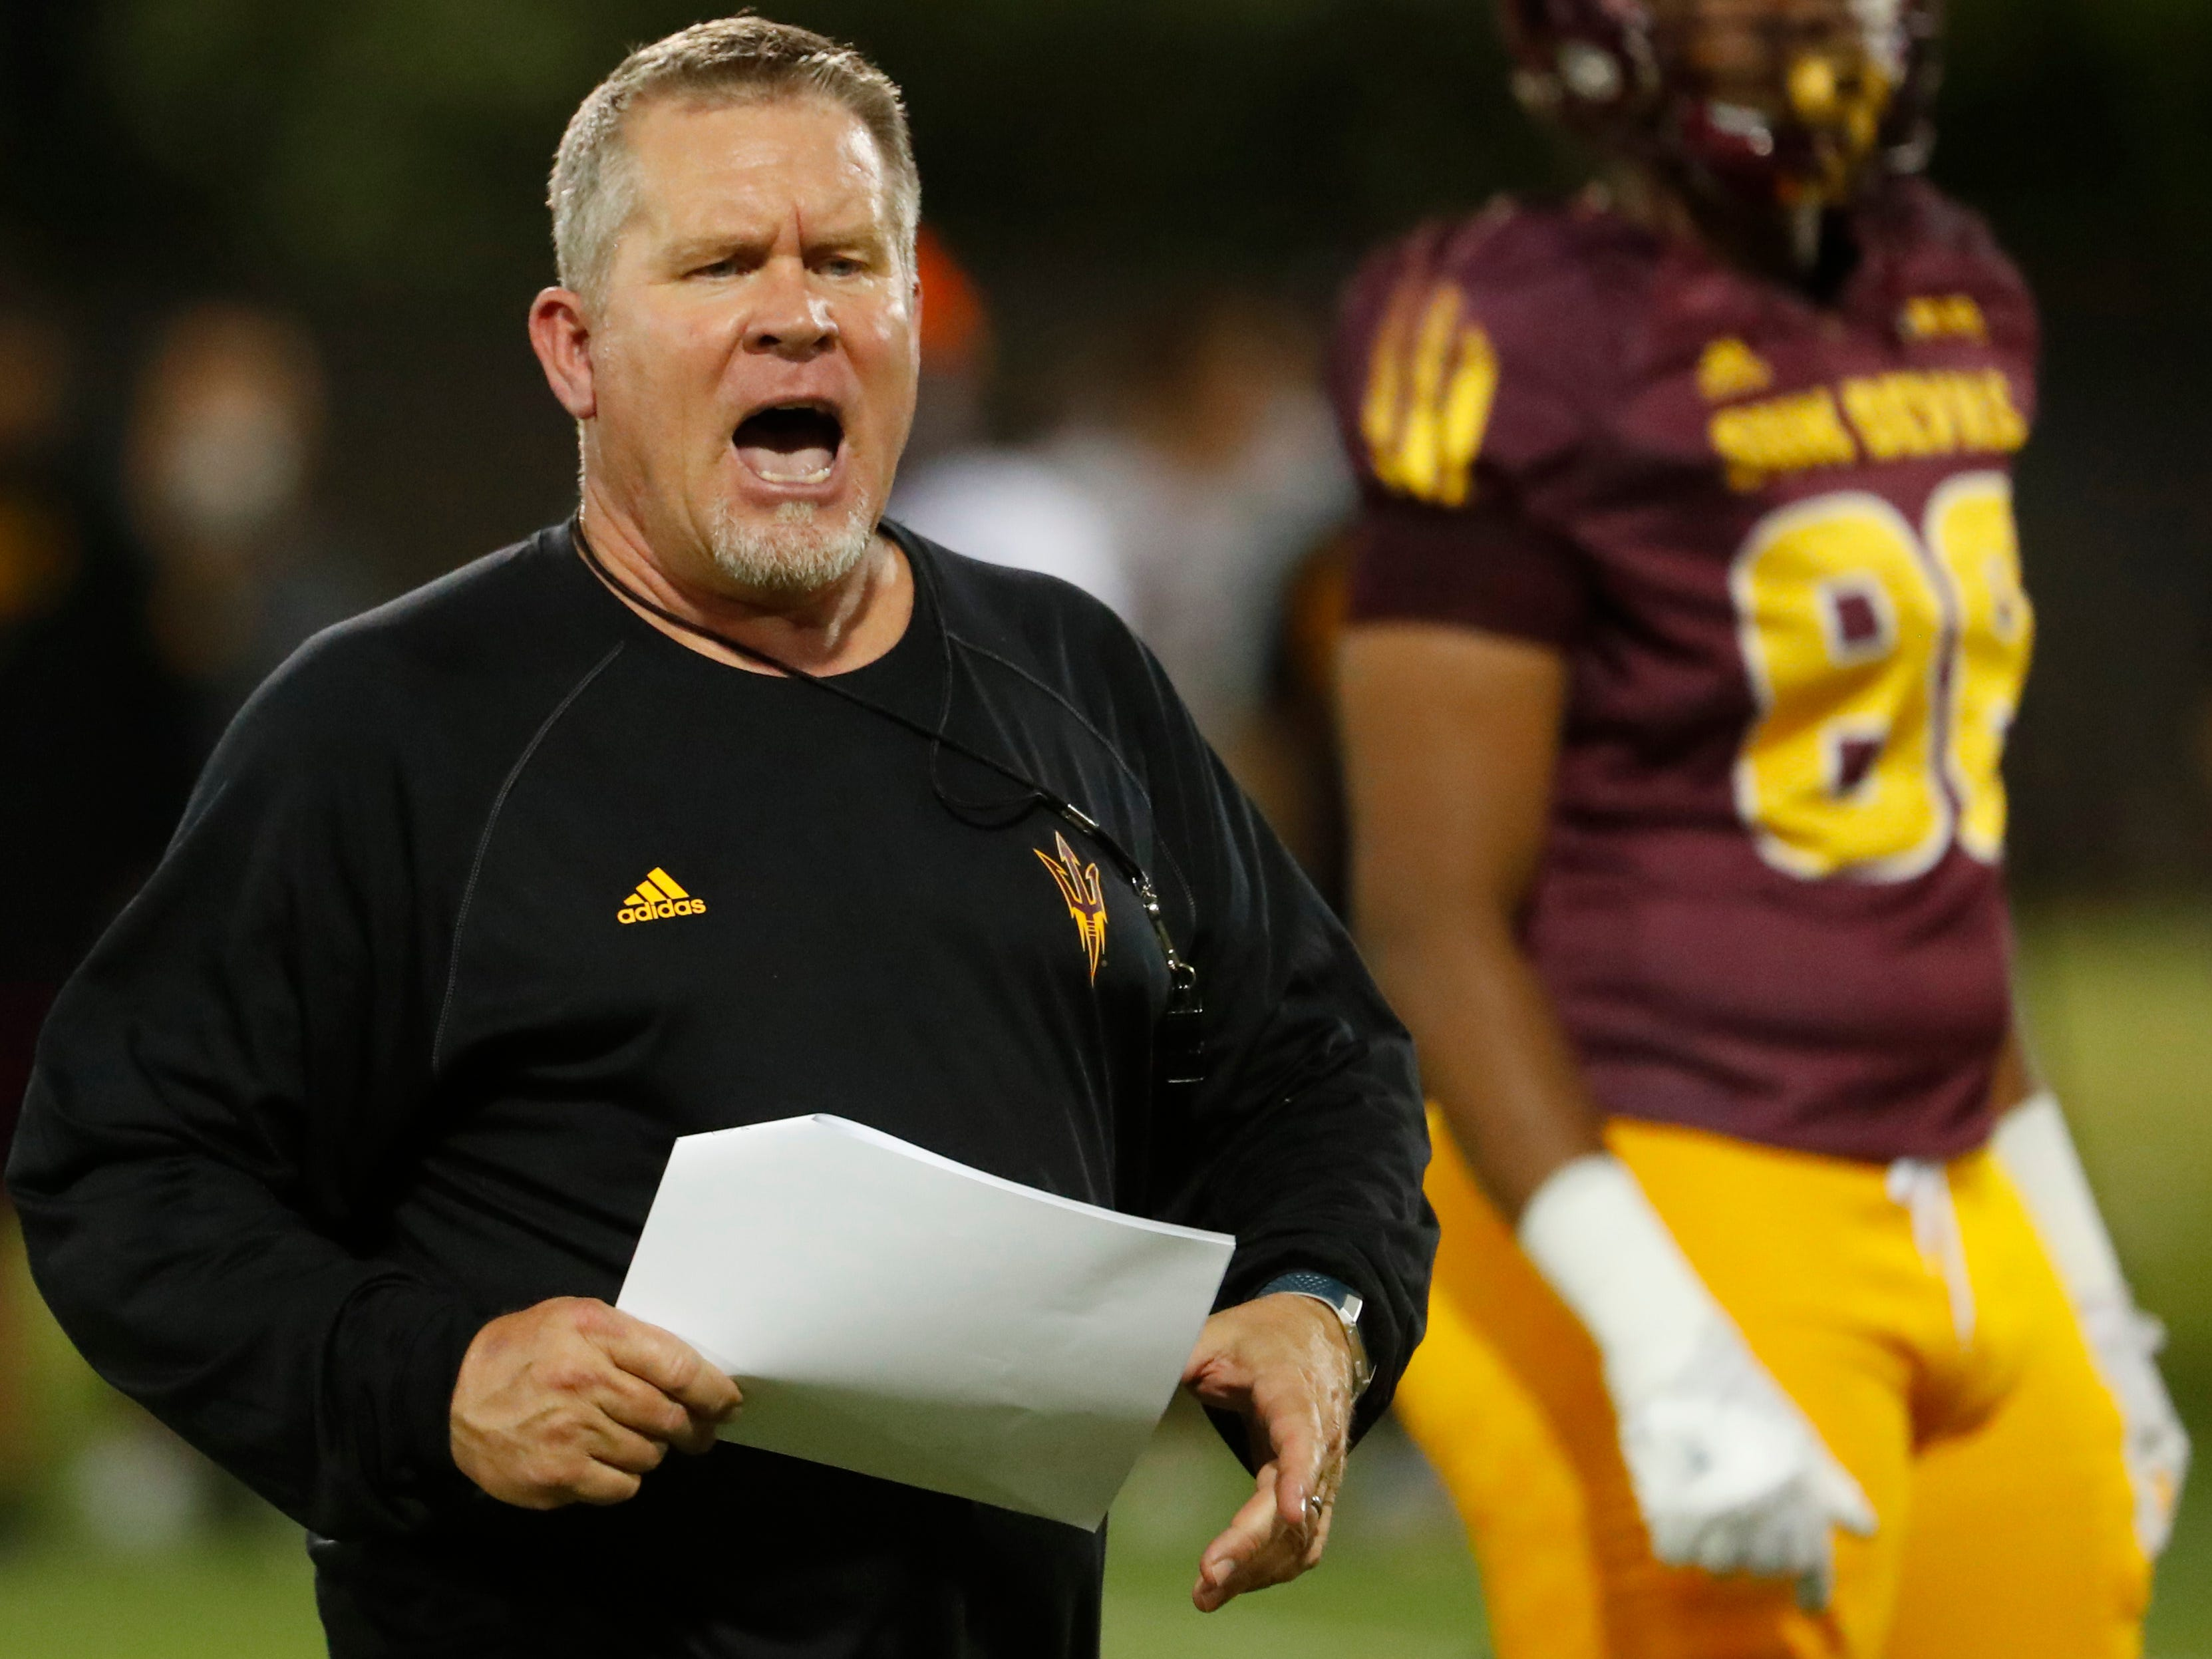 ASU's special teams coordinator Shawn Slocum talks to players during the ASU scrimmage at Kajikawa Practice Fields in Tempe, Ariz. on Aug. 11, 2018.